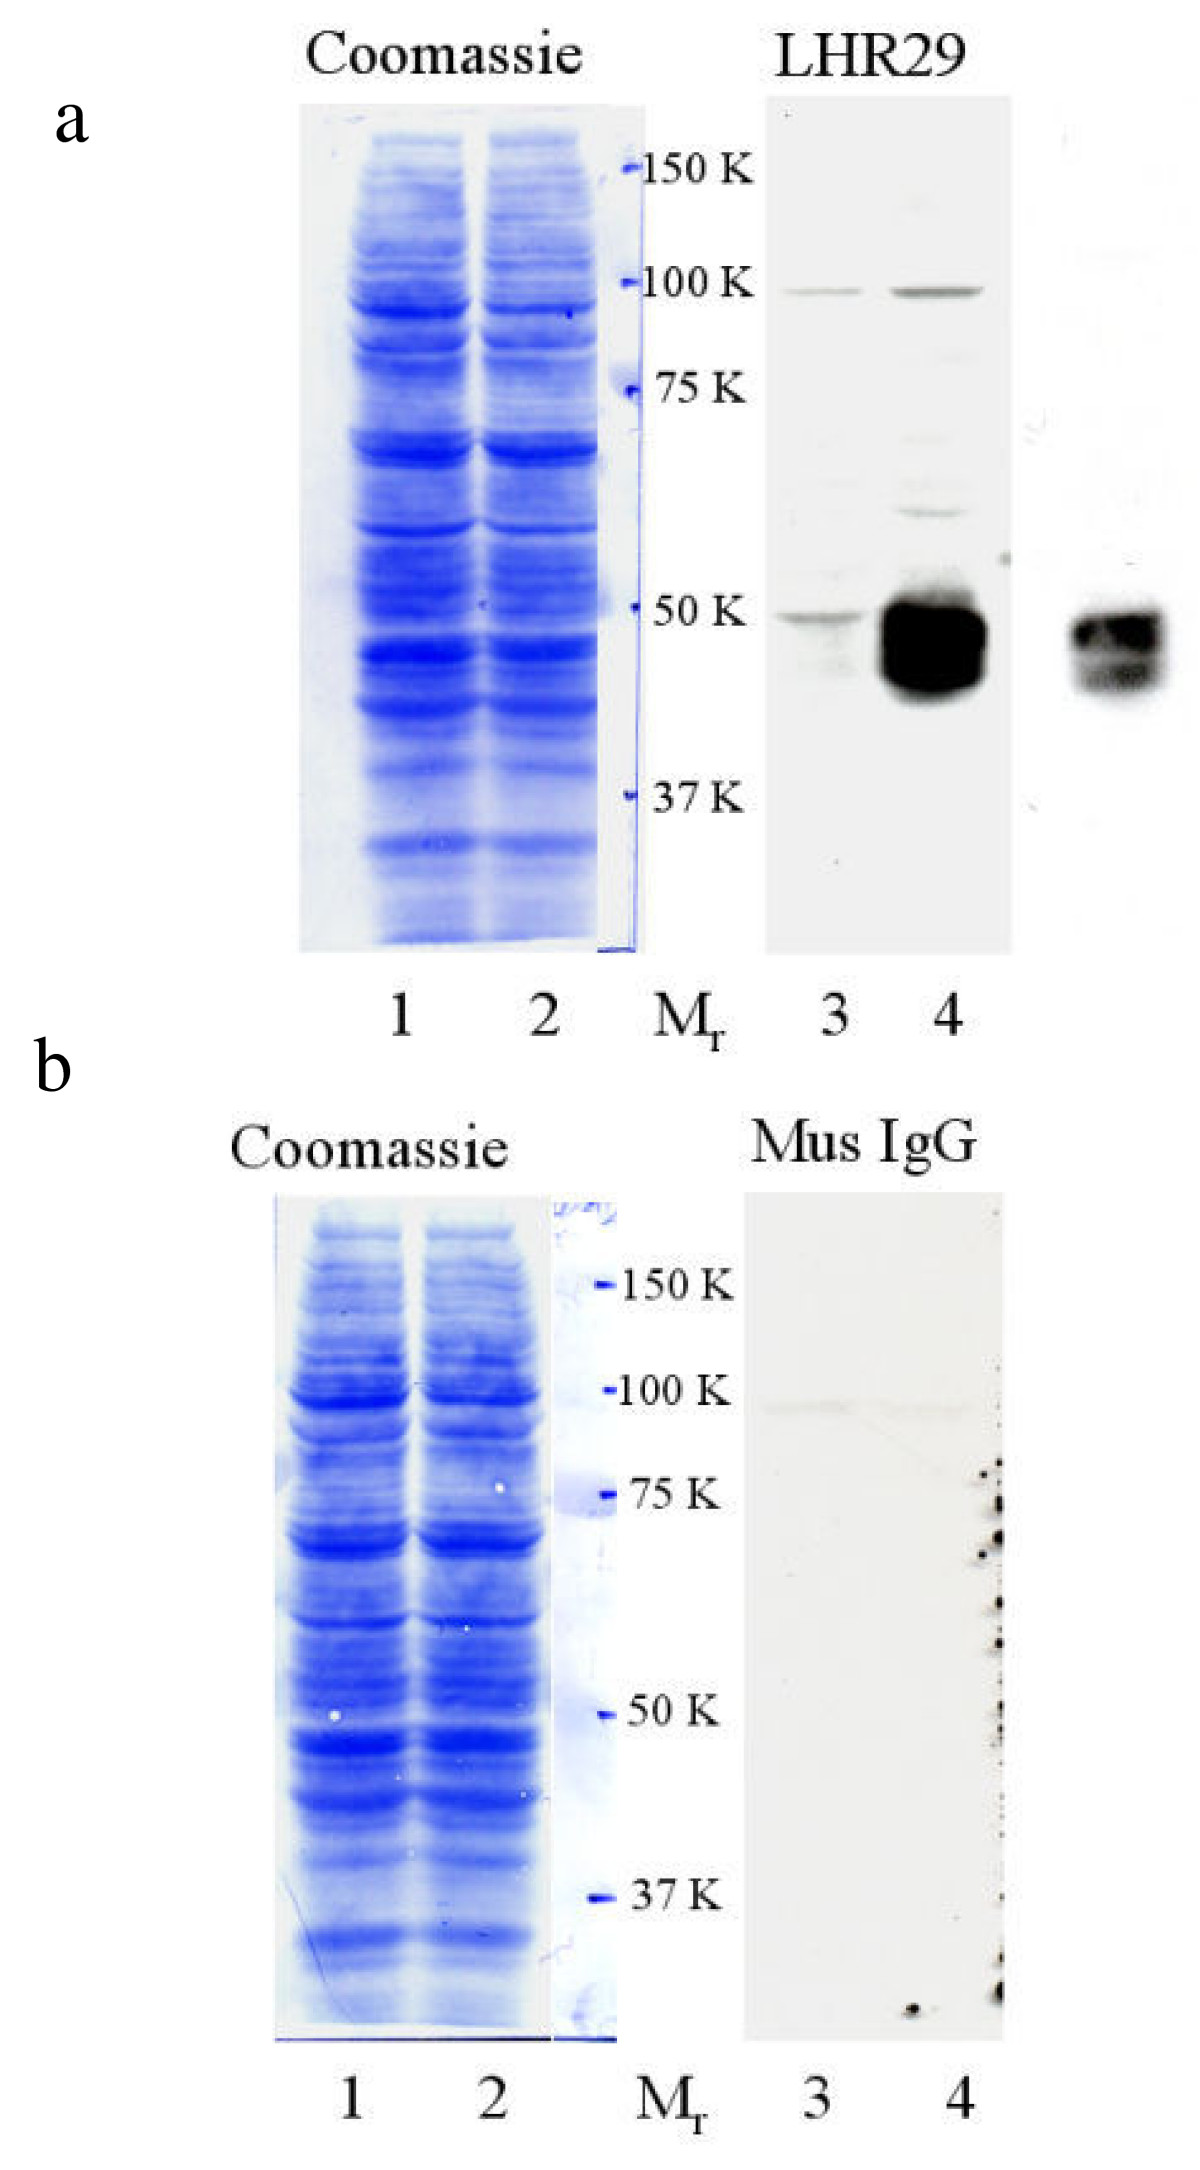 http://static-content.springer.com/image/art%3A10.1186%2F1477-7827-3-25/MediaObjects/12958_2005_Article_233_Fig4_HTML.jpg